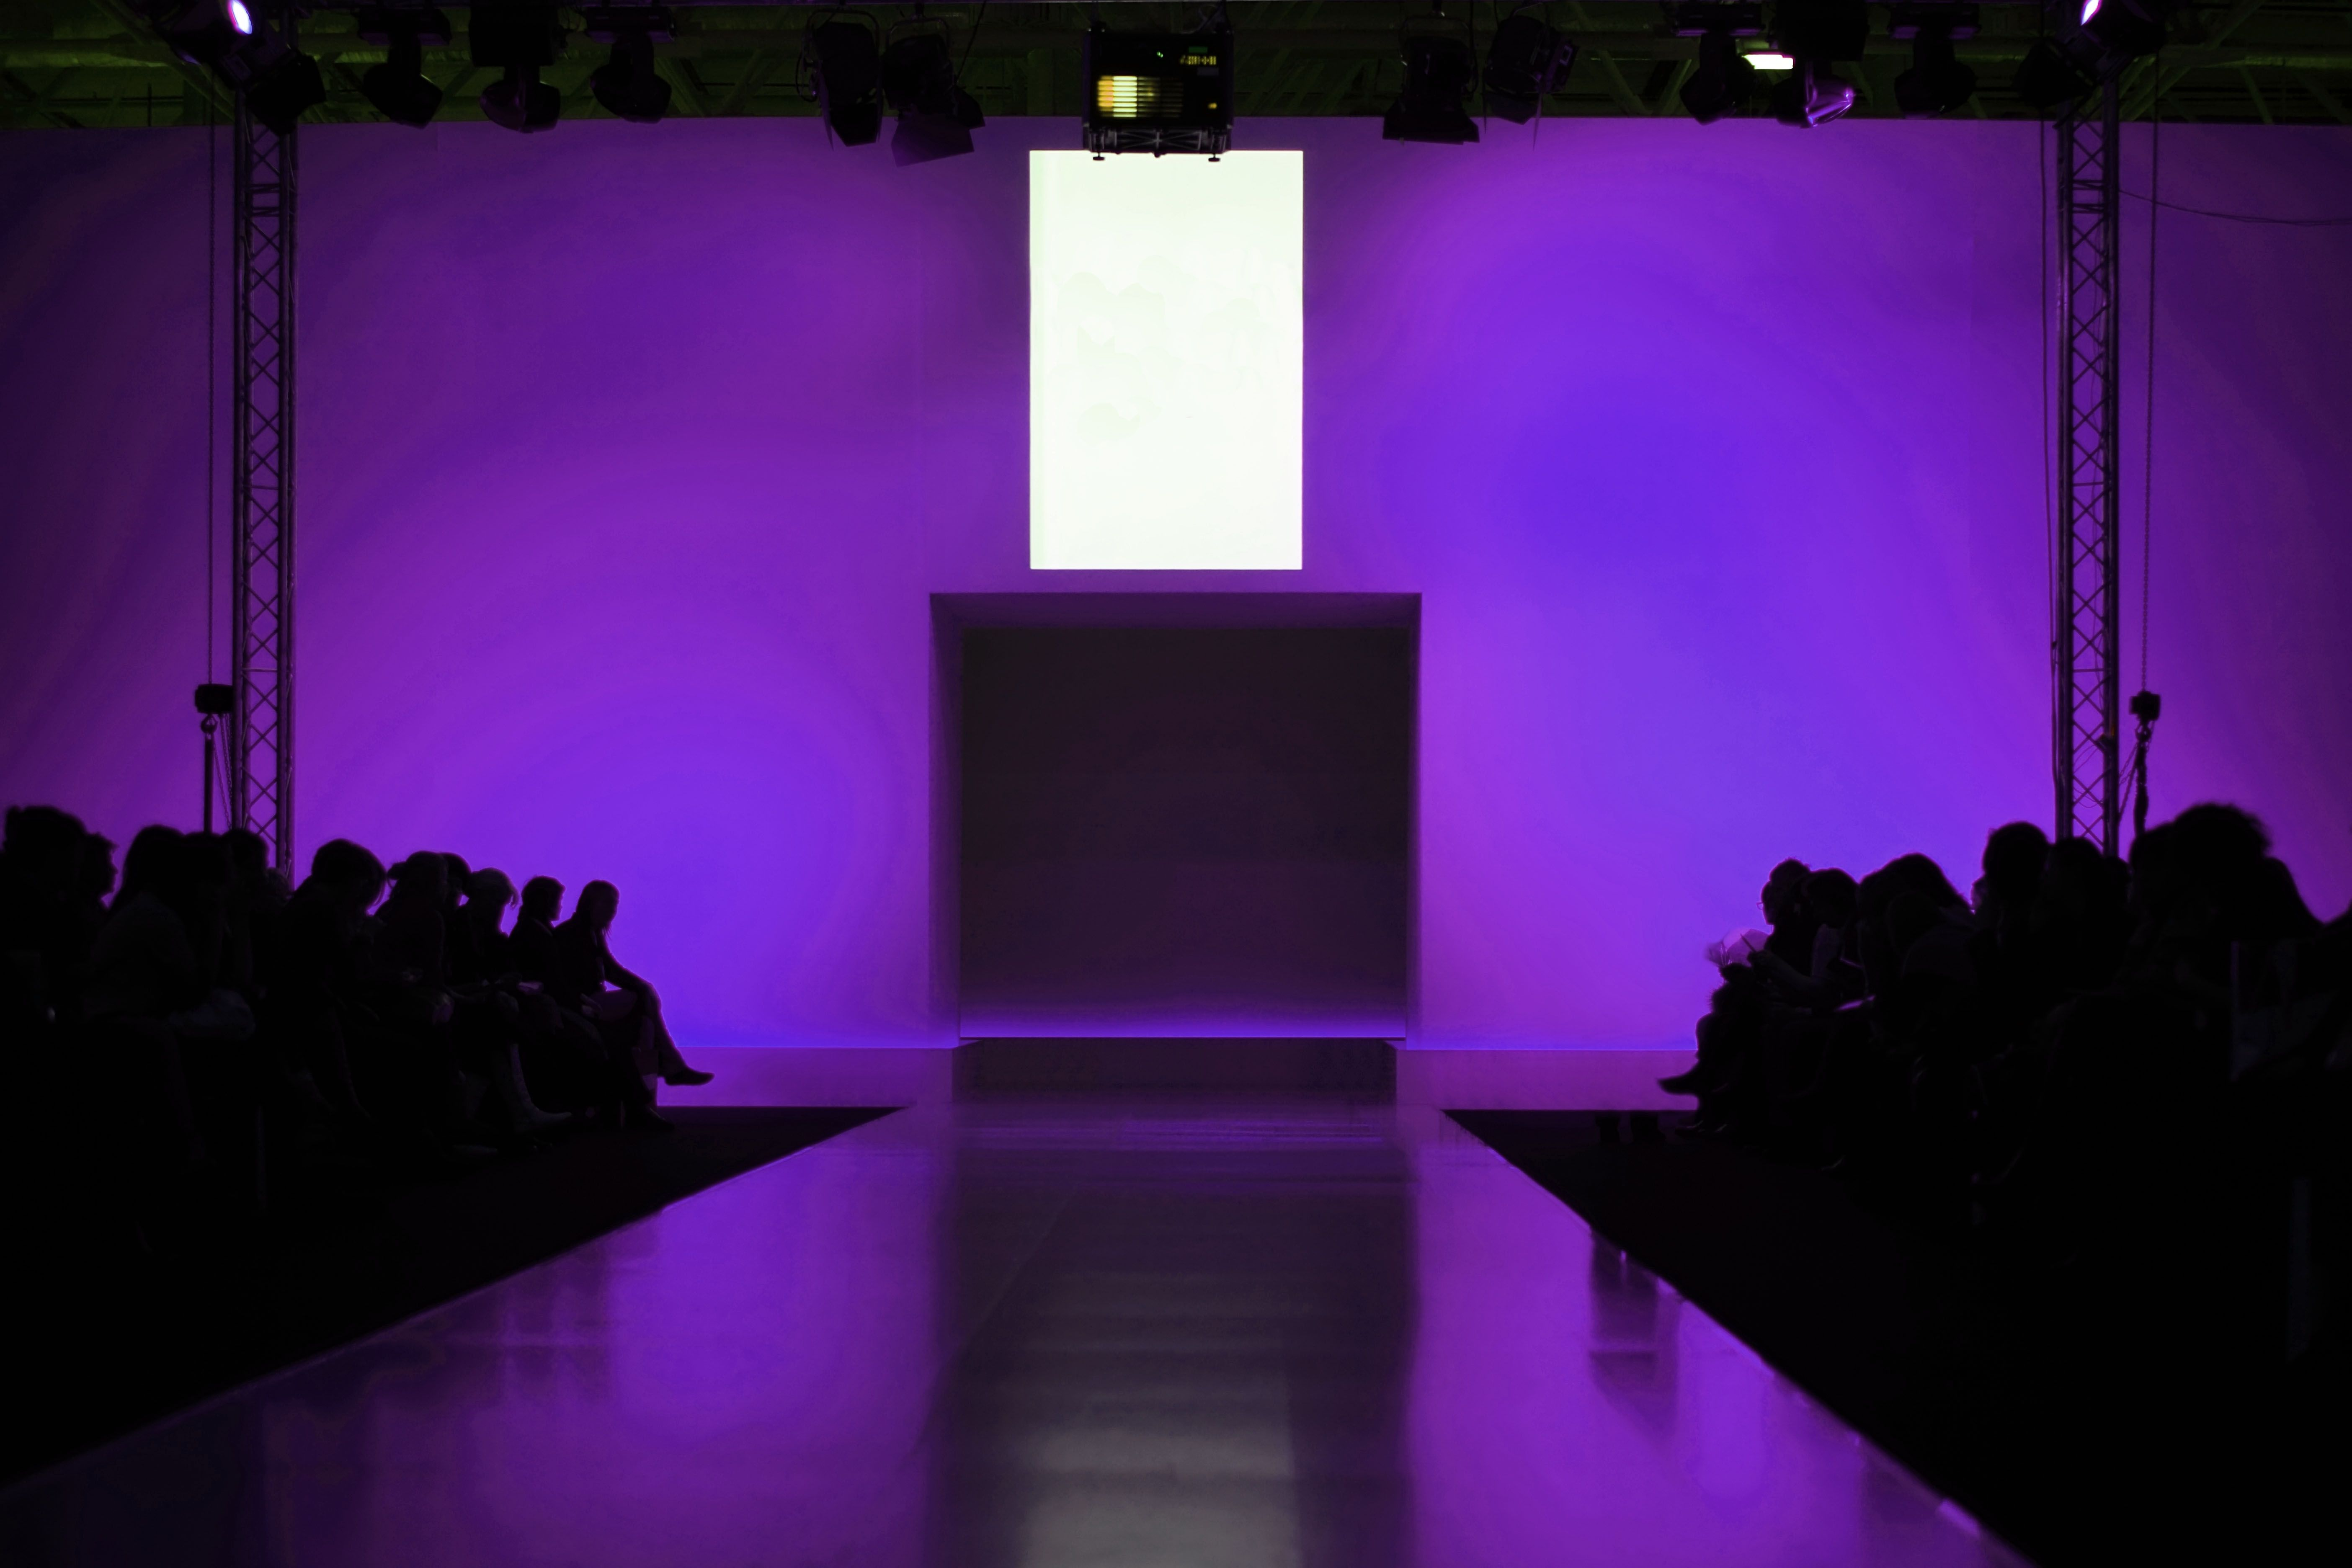 A Fashion Show Is An Event Put On By A Fashion Designer To Showcase